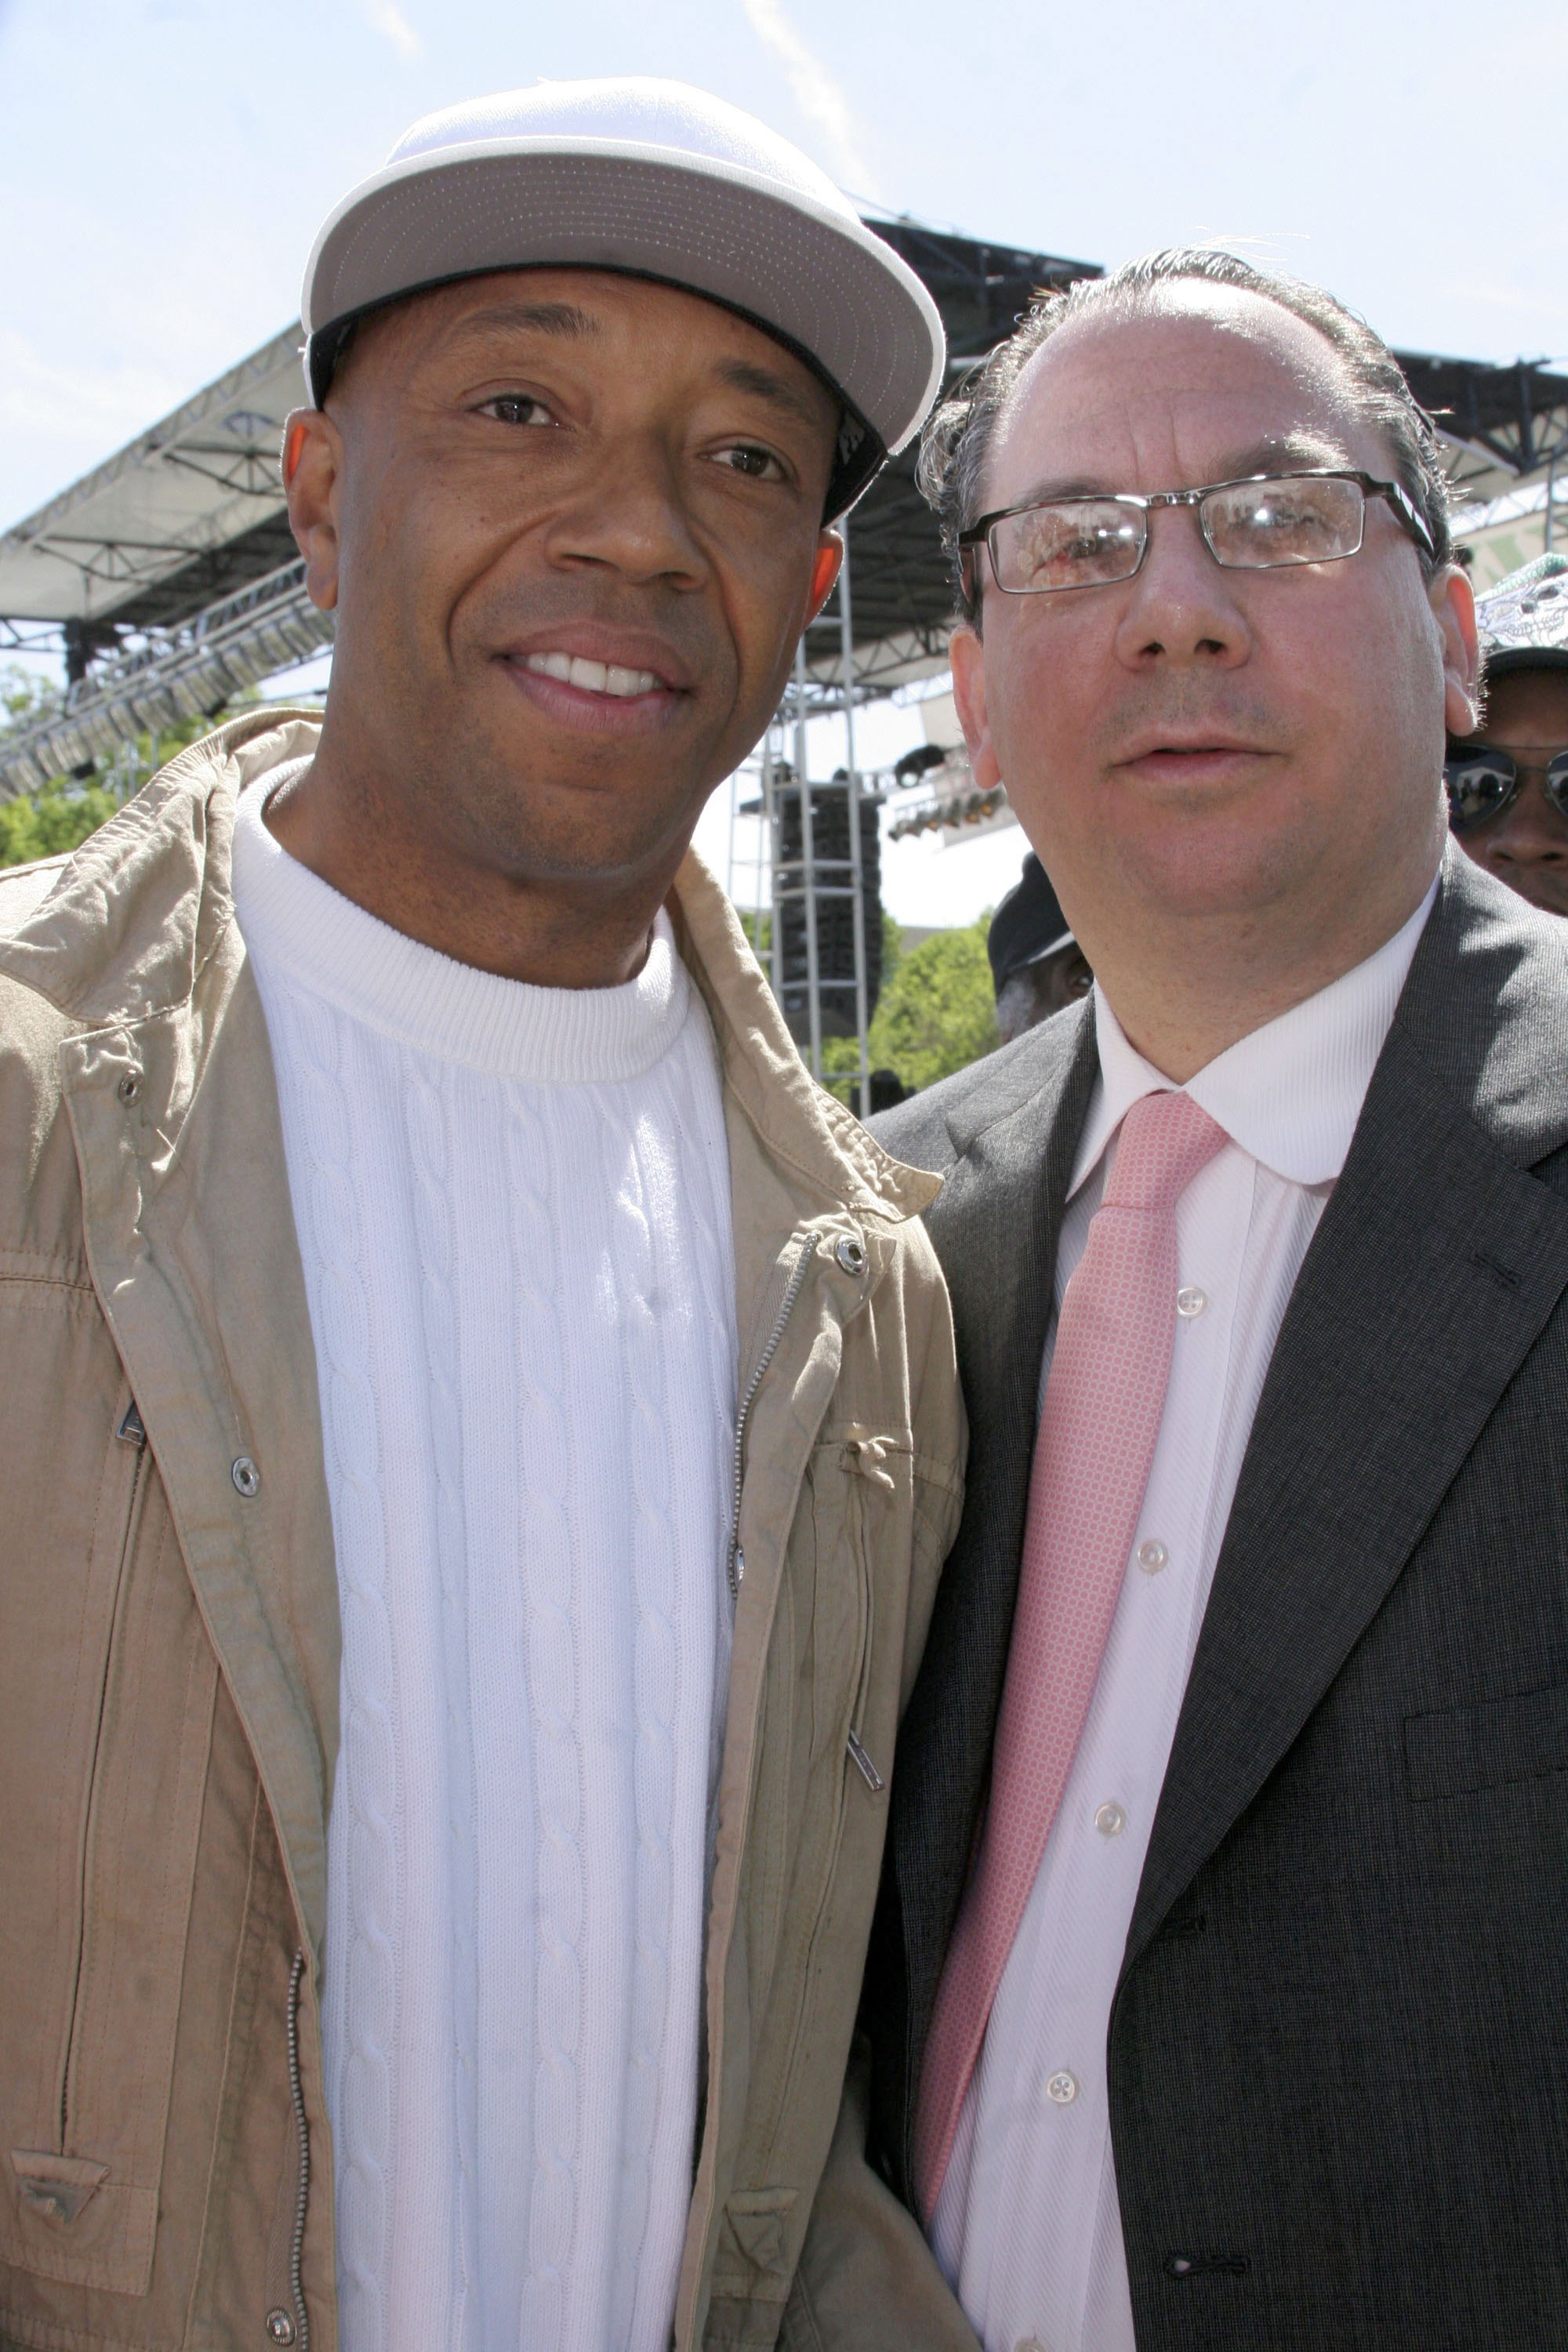 """WASHINGTON - APRIL 30: Russell Simmons (L) and Rabbi Marc Schneier (R) arrive at """"Save Darfur: Rally To Stop Genocide"""" April 30, 2006 in Washington, DC. (Photo by Nancy Ostertag/Getty Images)"""